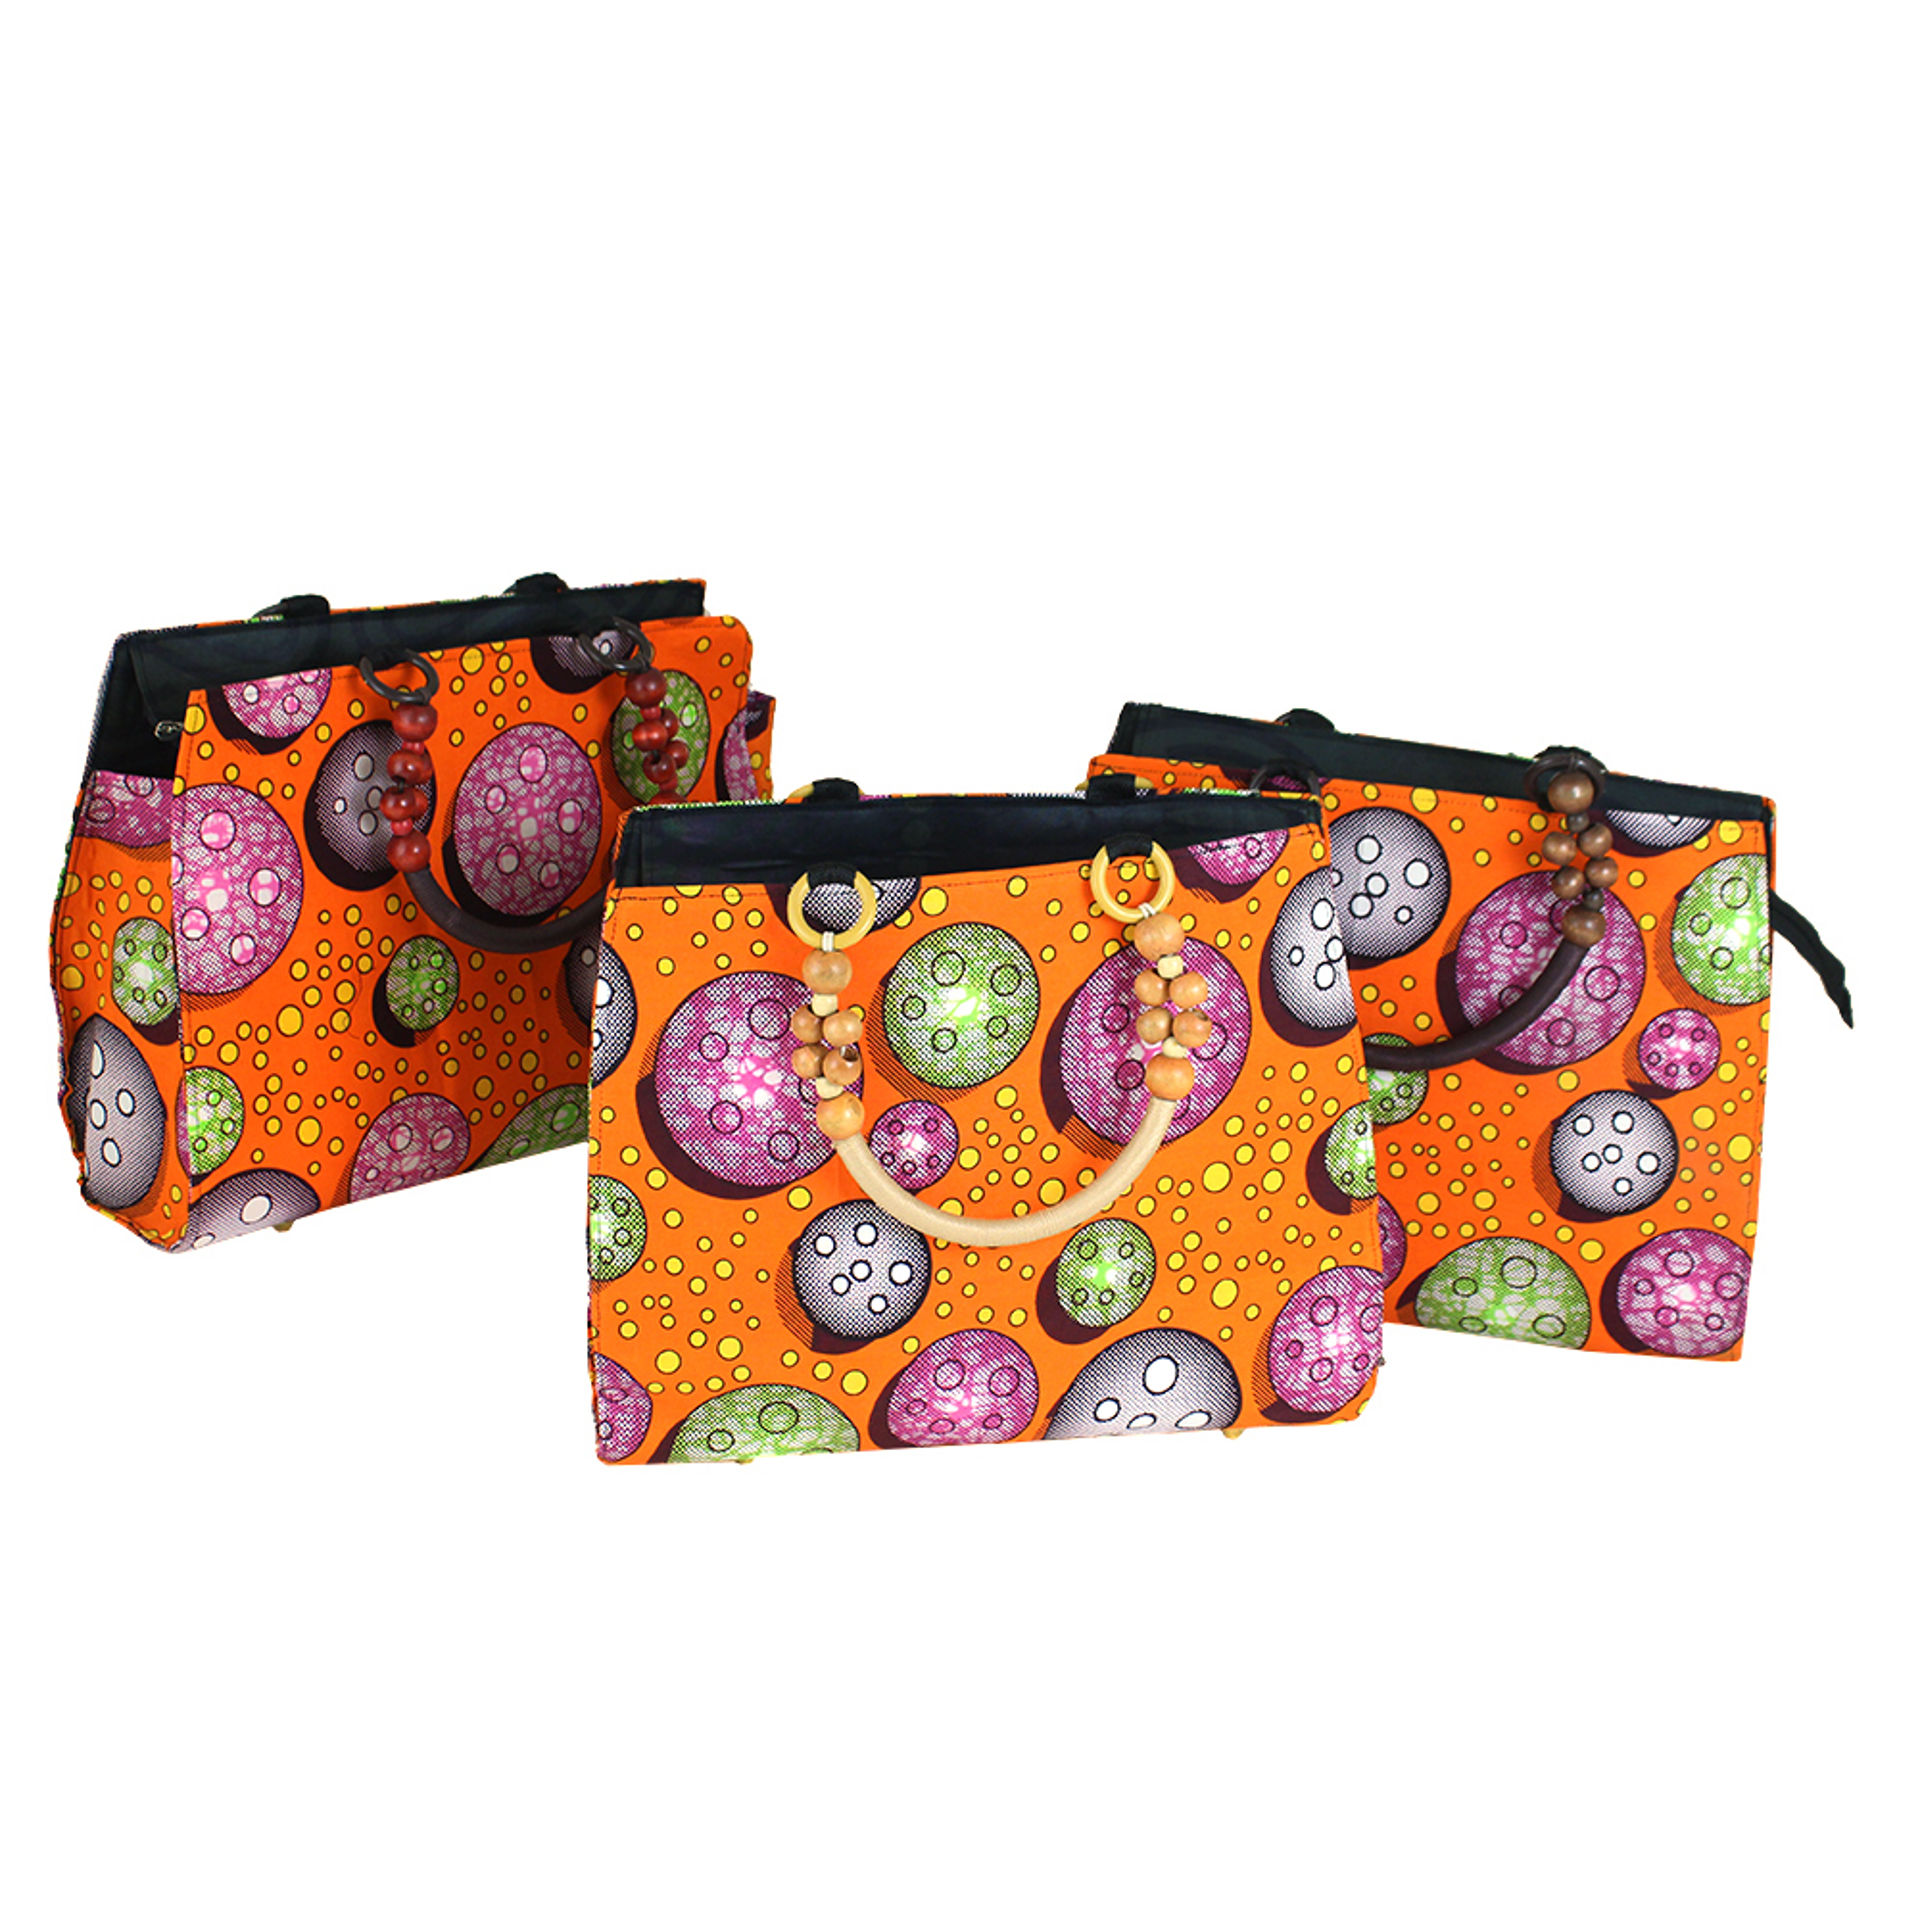 Picture of Orange African Print Handbag